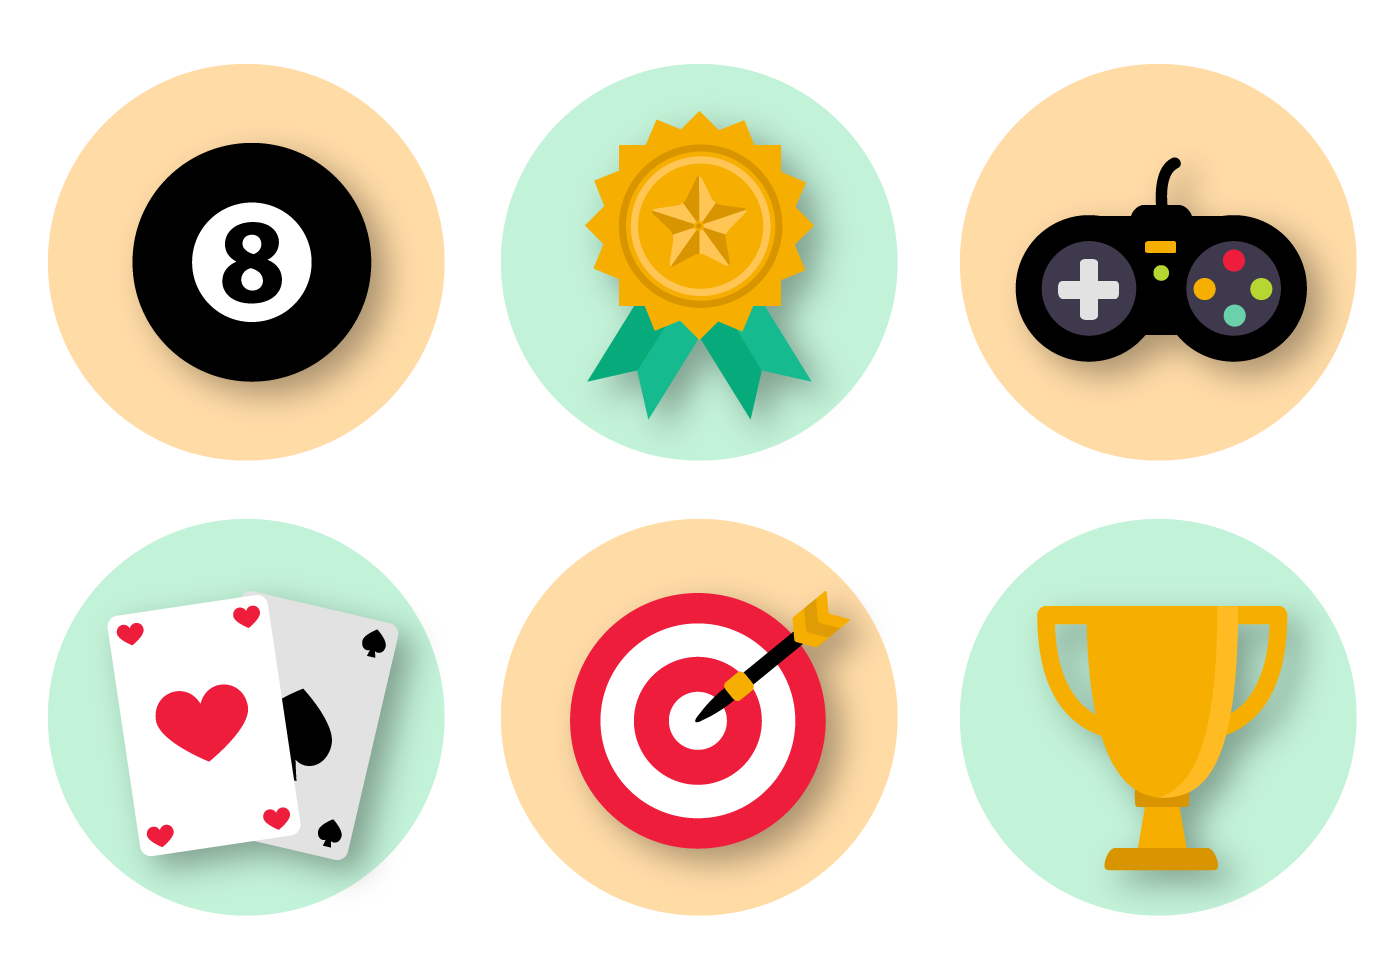 Free Game Icons Vector - Download Free Vector Art, Stock ...